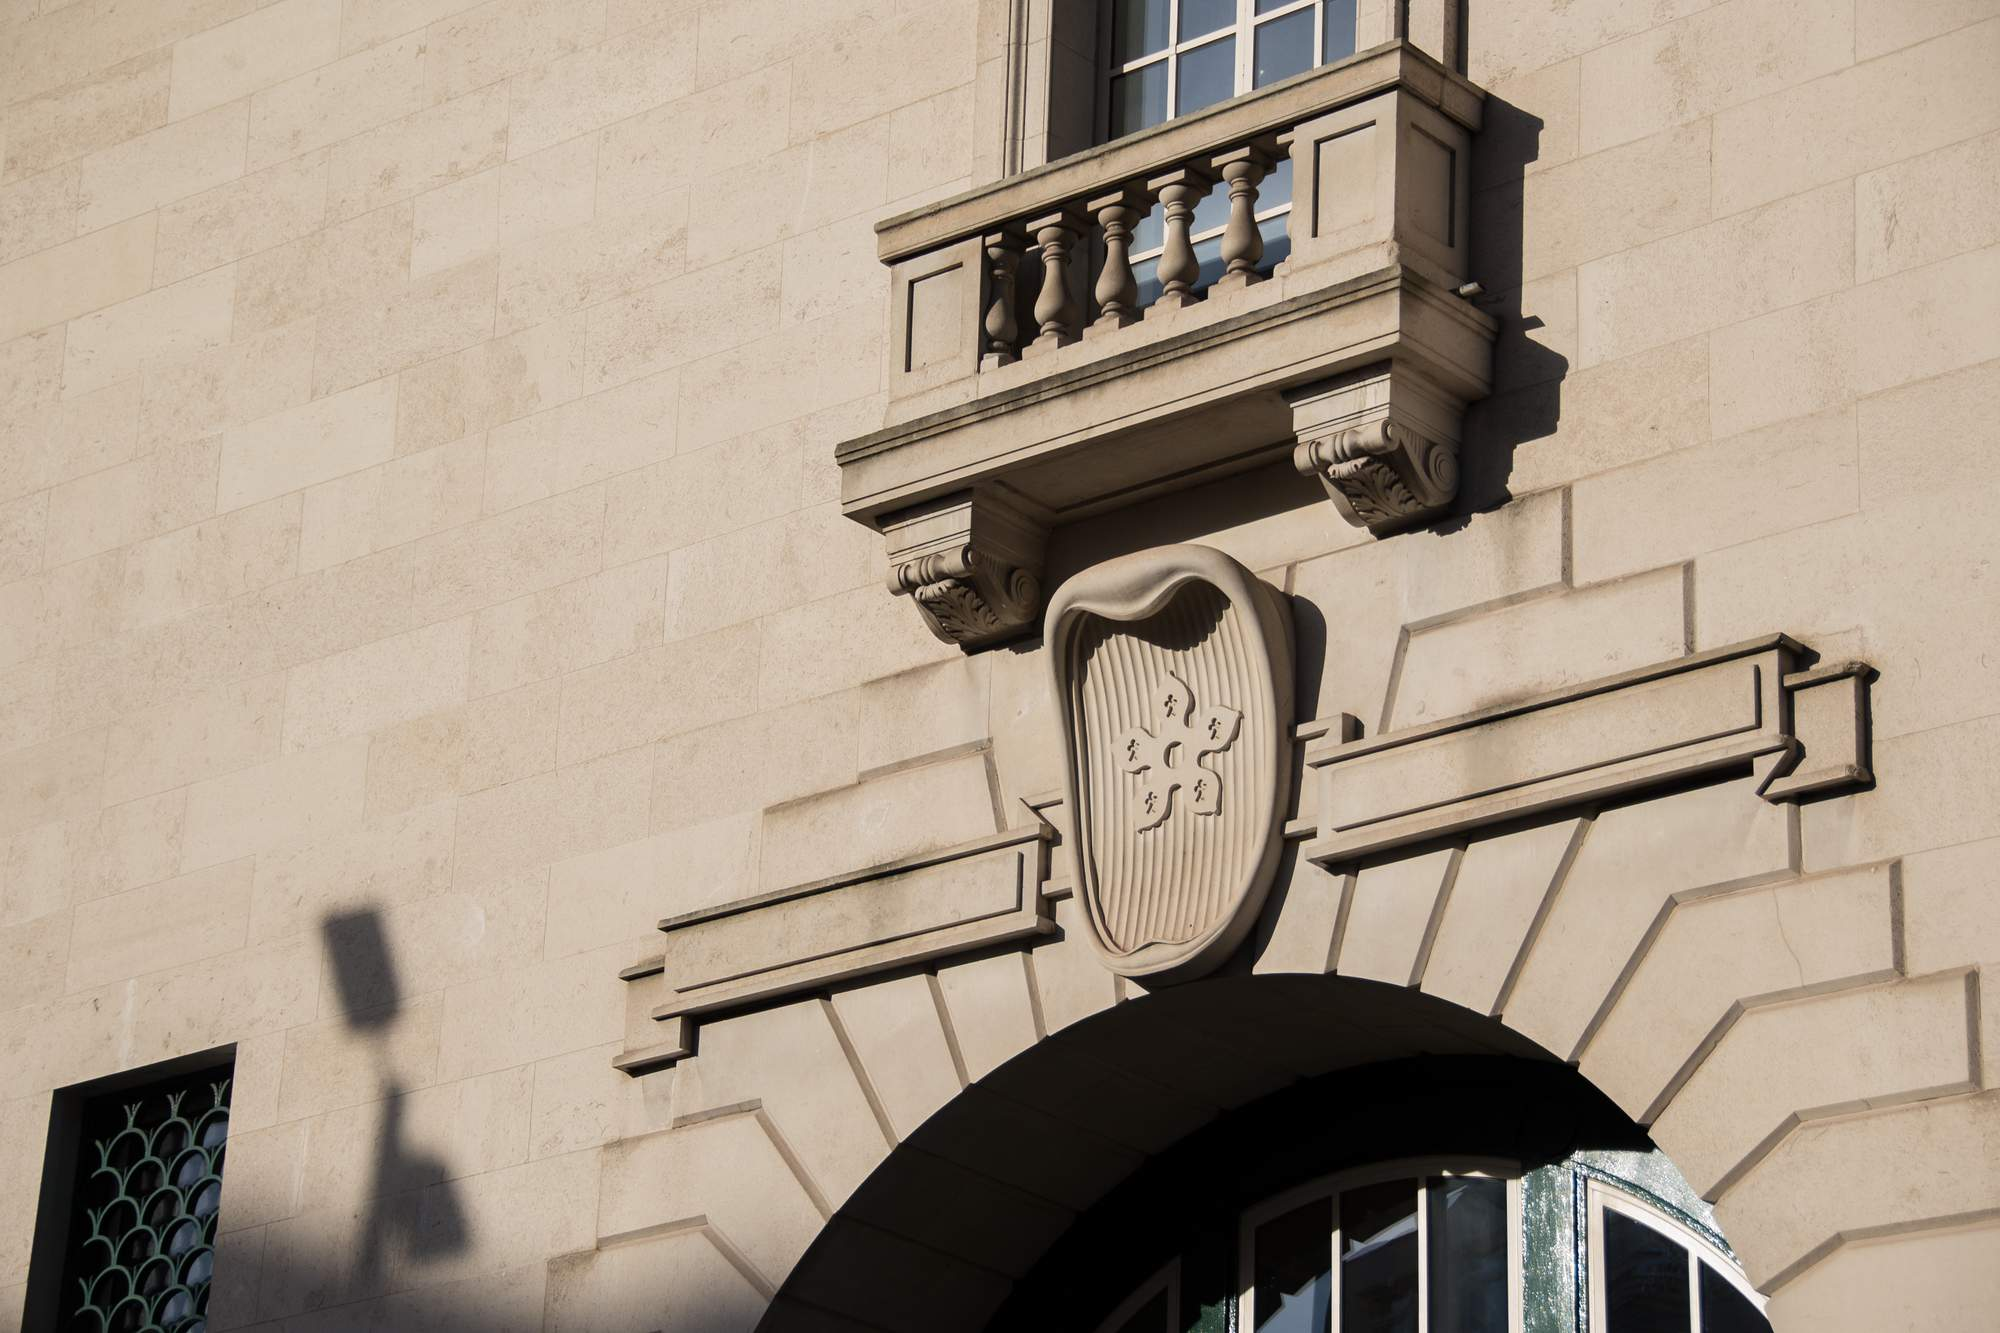 Detail of the building frontage -